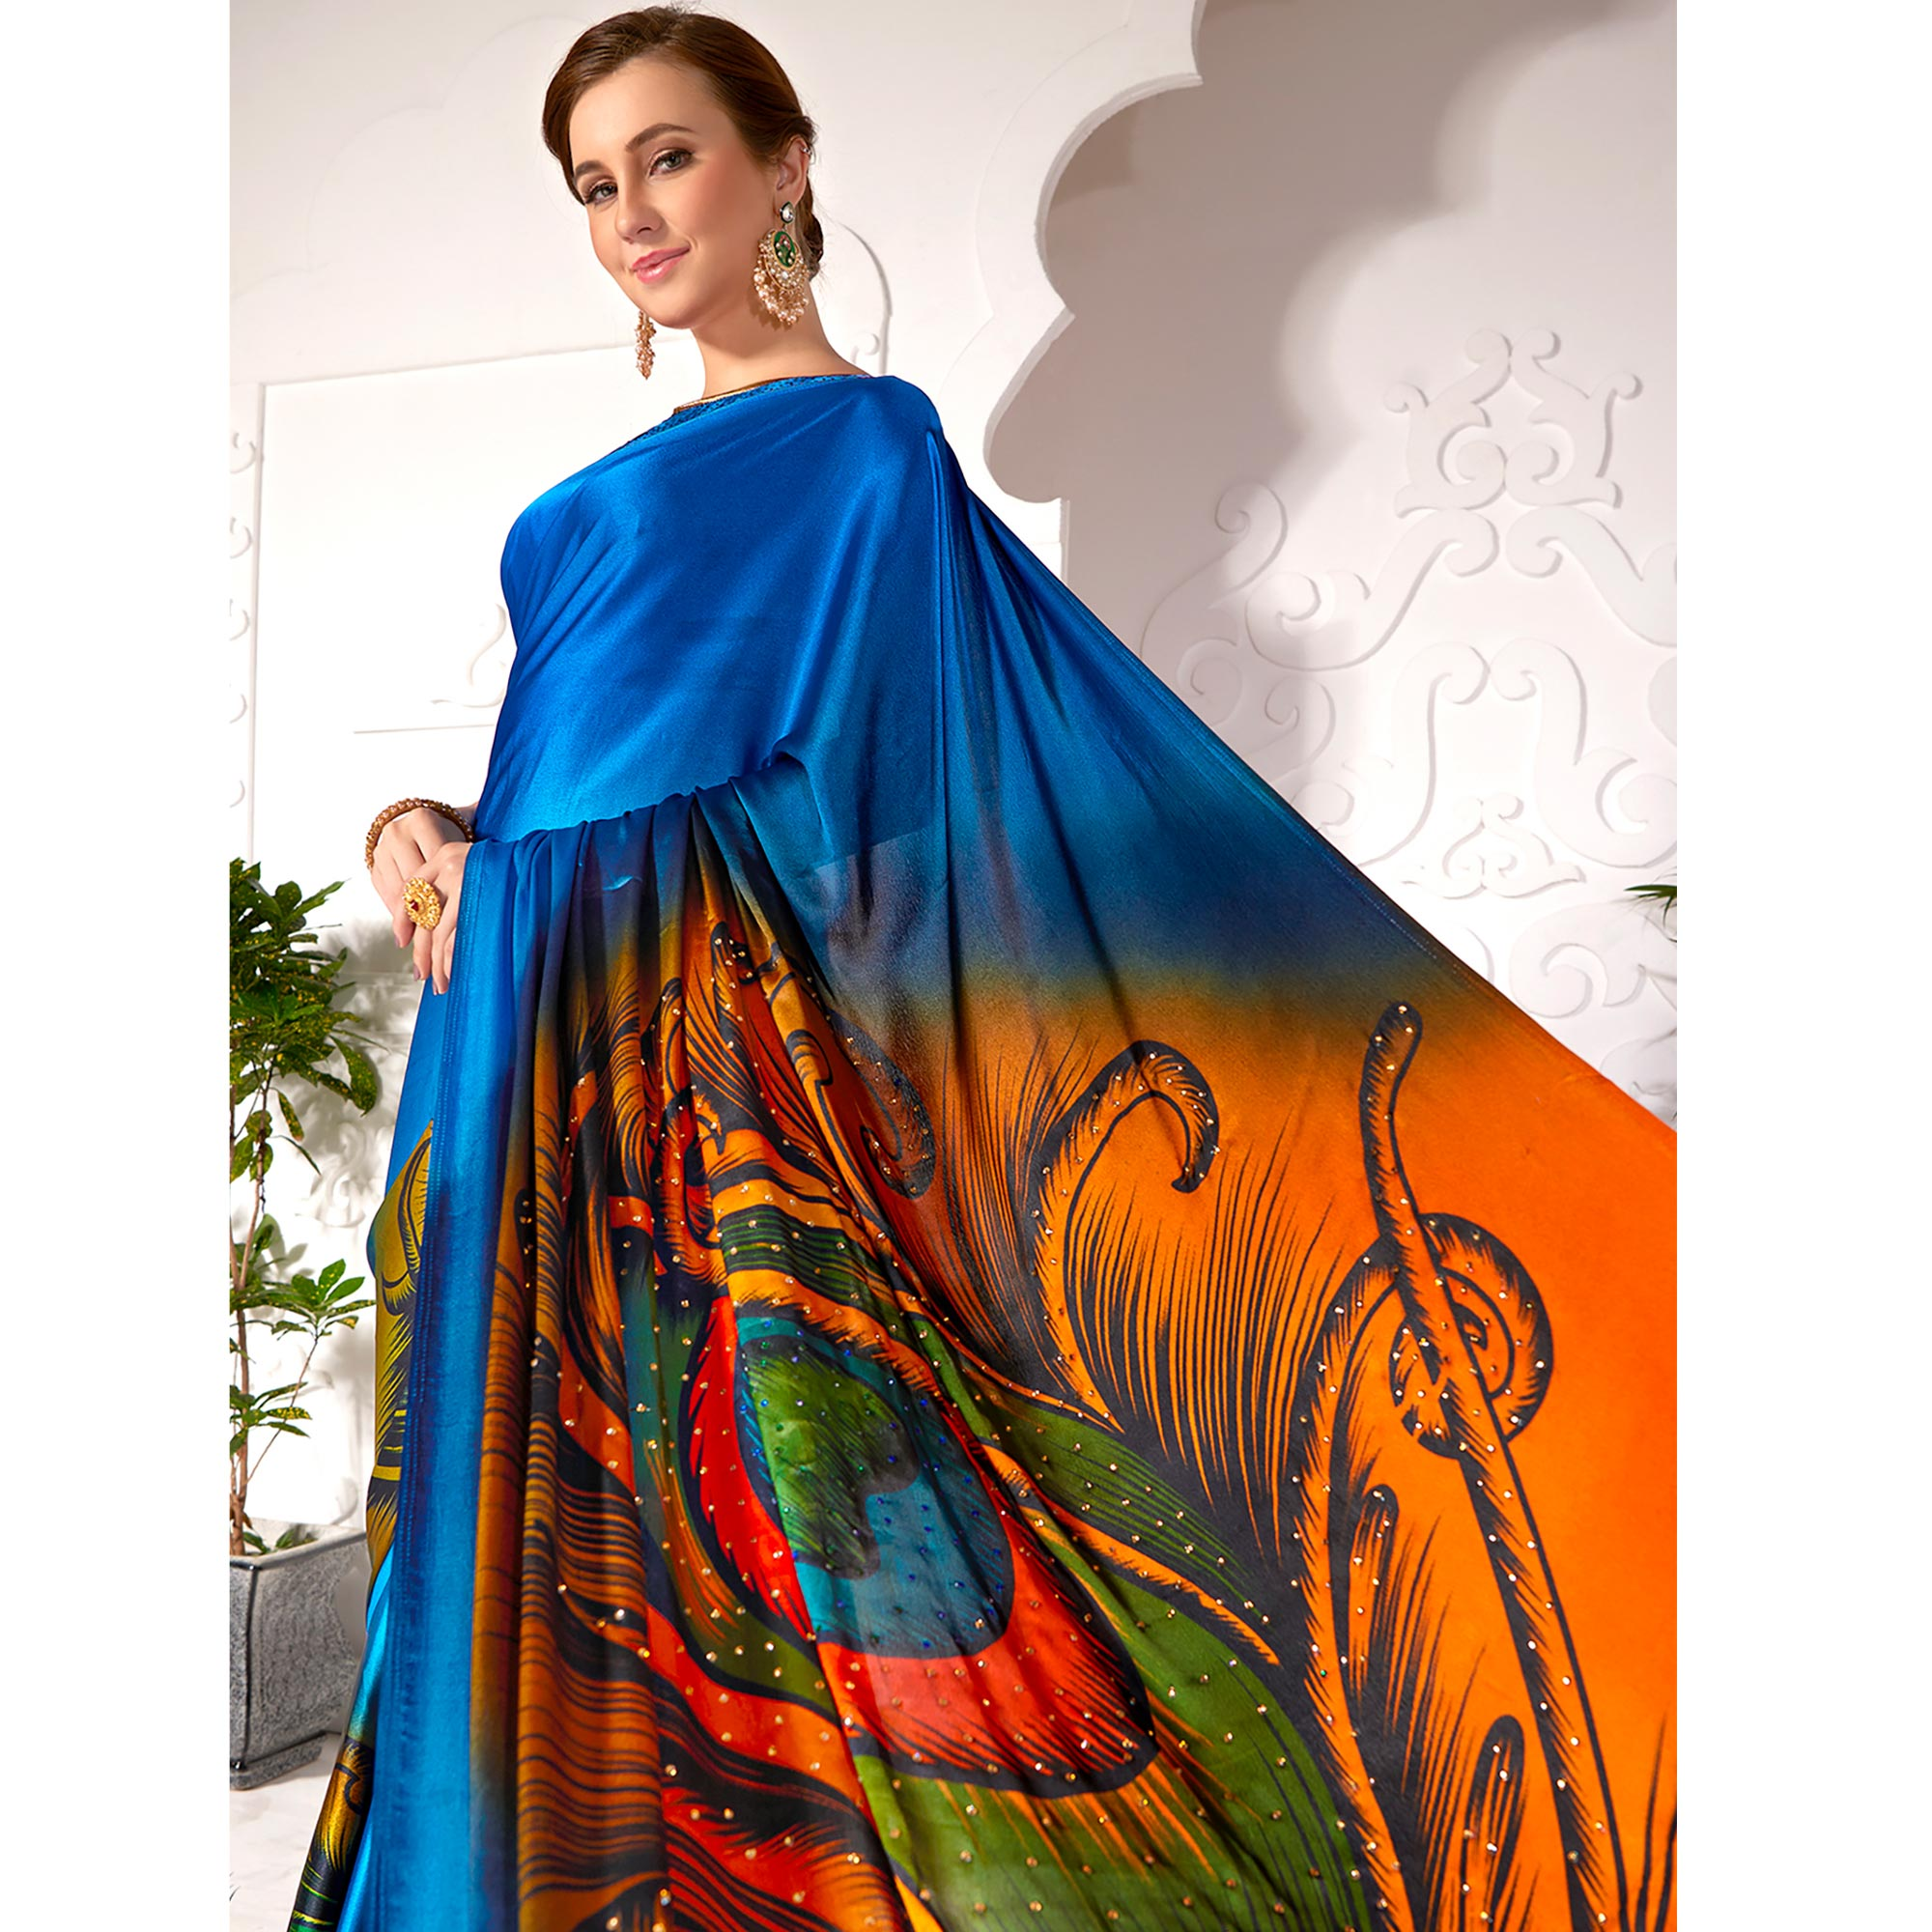 Marvellous Blue Colored Partywear Peacock Feather Printed Satin Saree